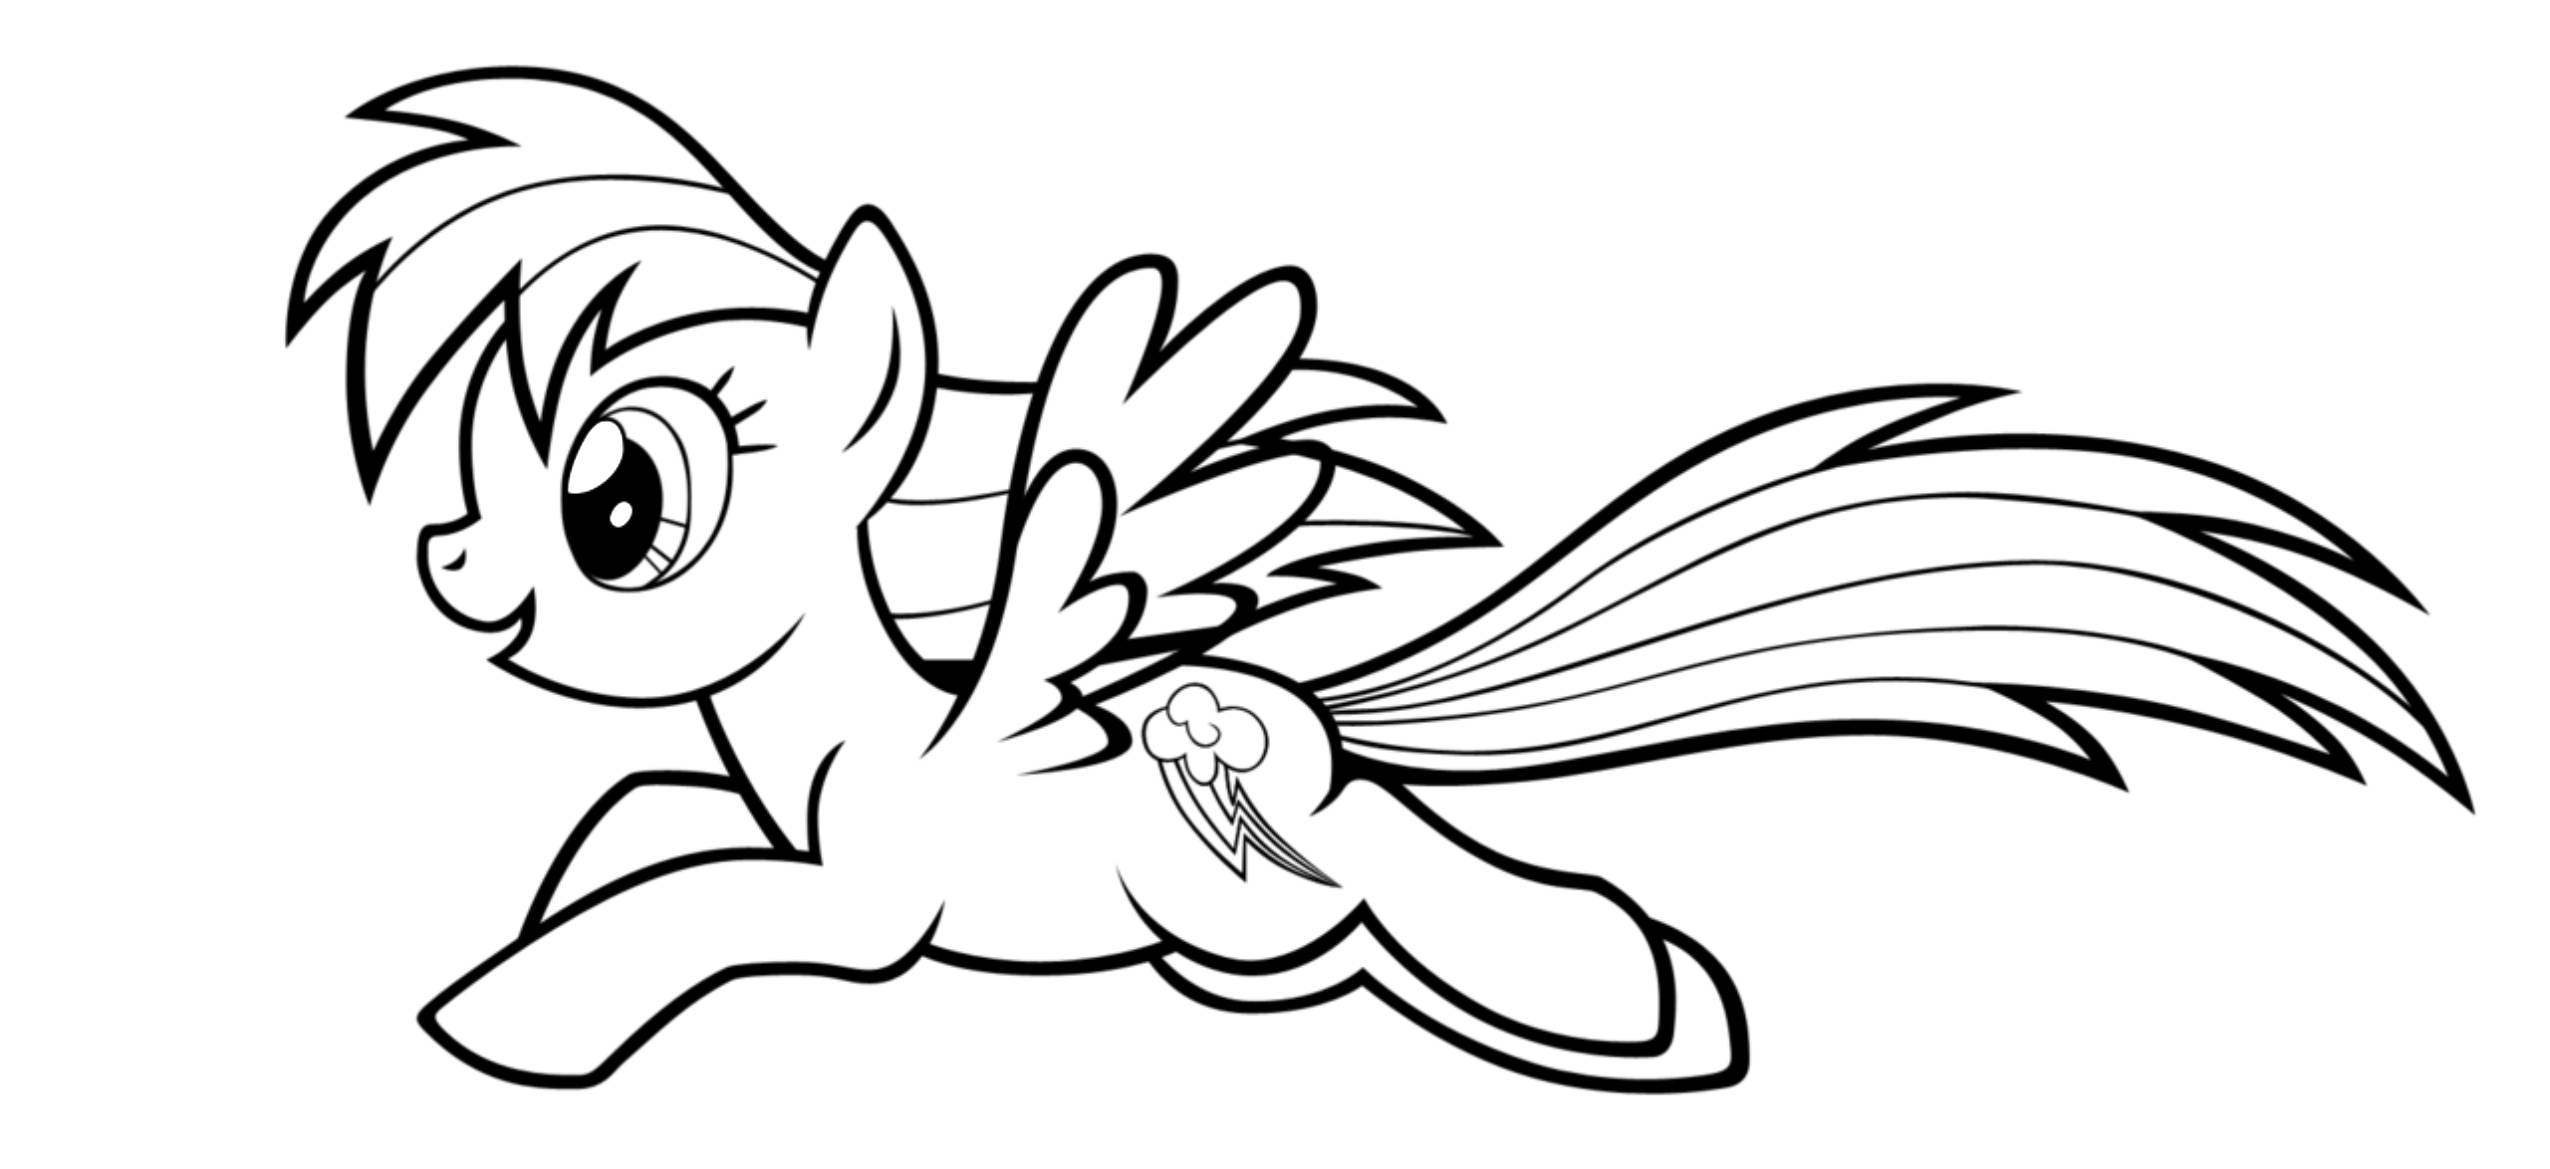 Free Printable Coloring Pages Of My Little Pony At Getdrawings